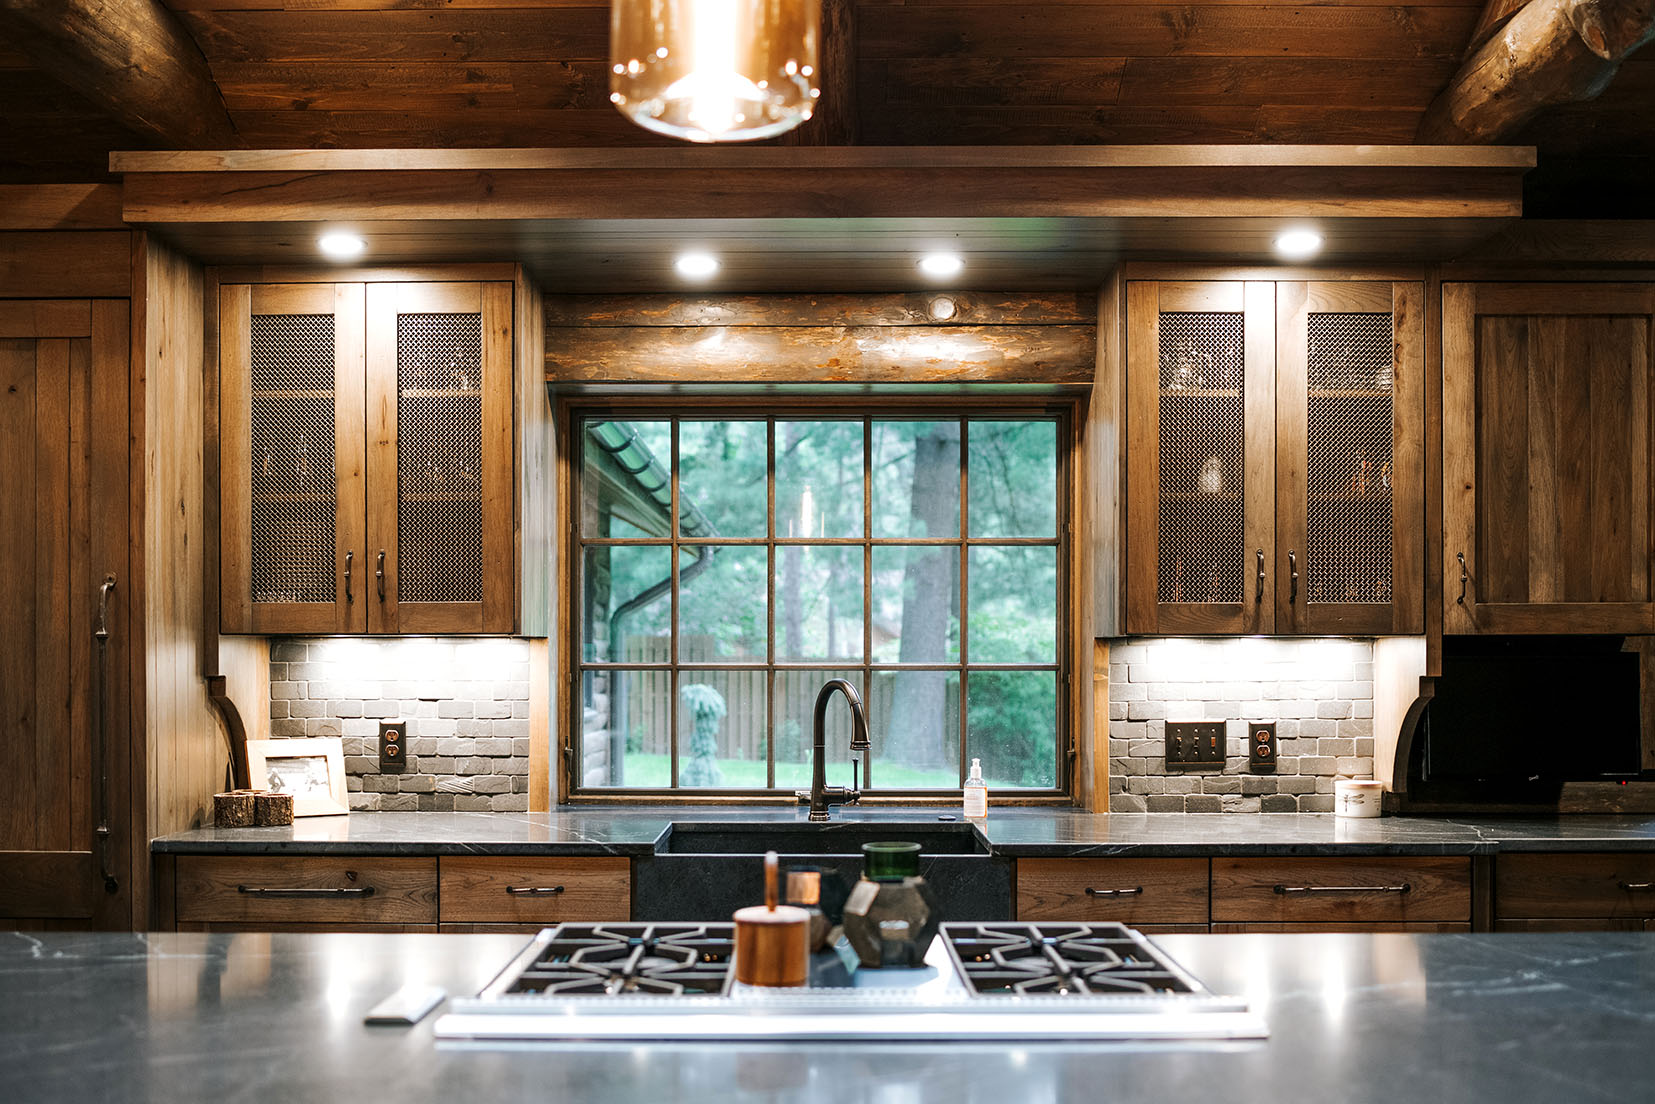 Distressed Rustic Hickory kitchen cabinets - Alpine Cabinetry ...